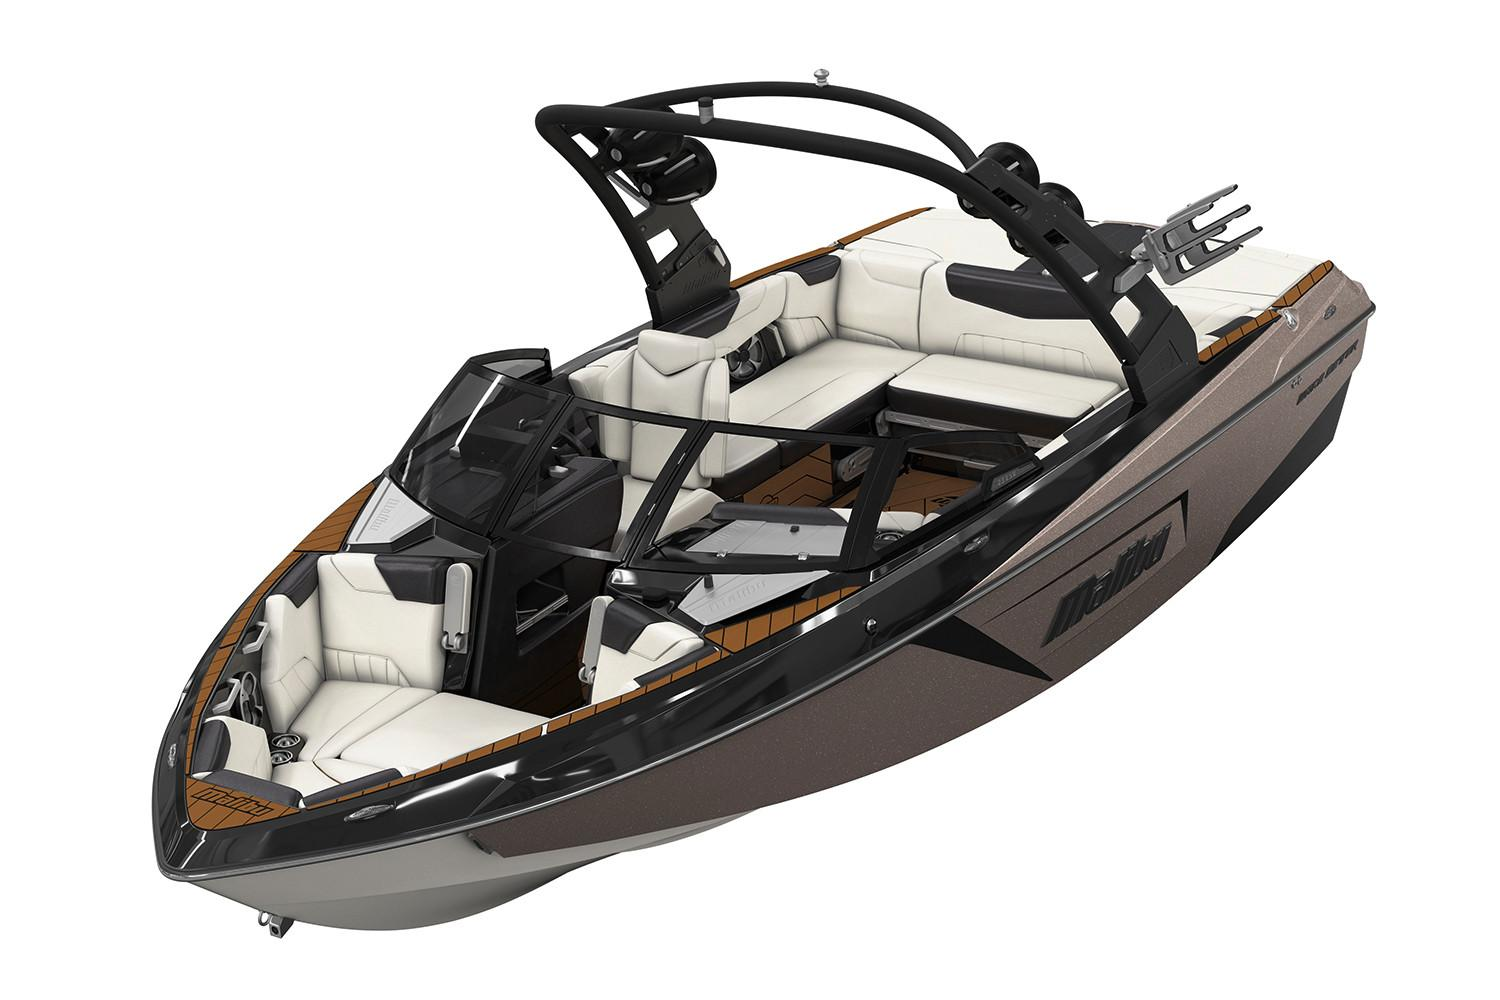 2020 Malibu Wakesetter 23 LSV in Rapid City, South Dakota - Photo 10